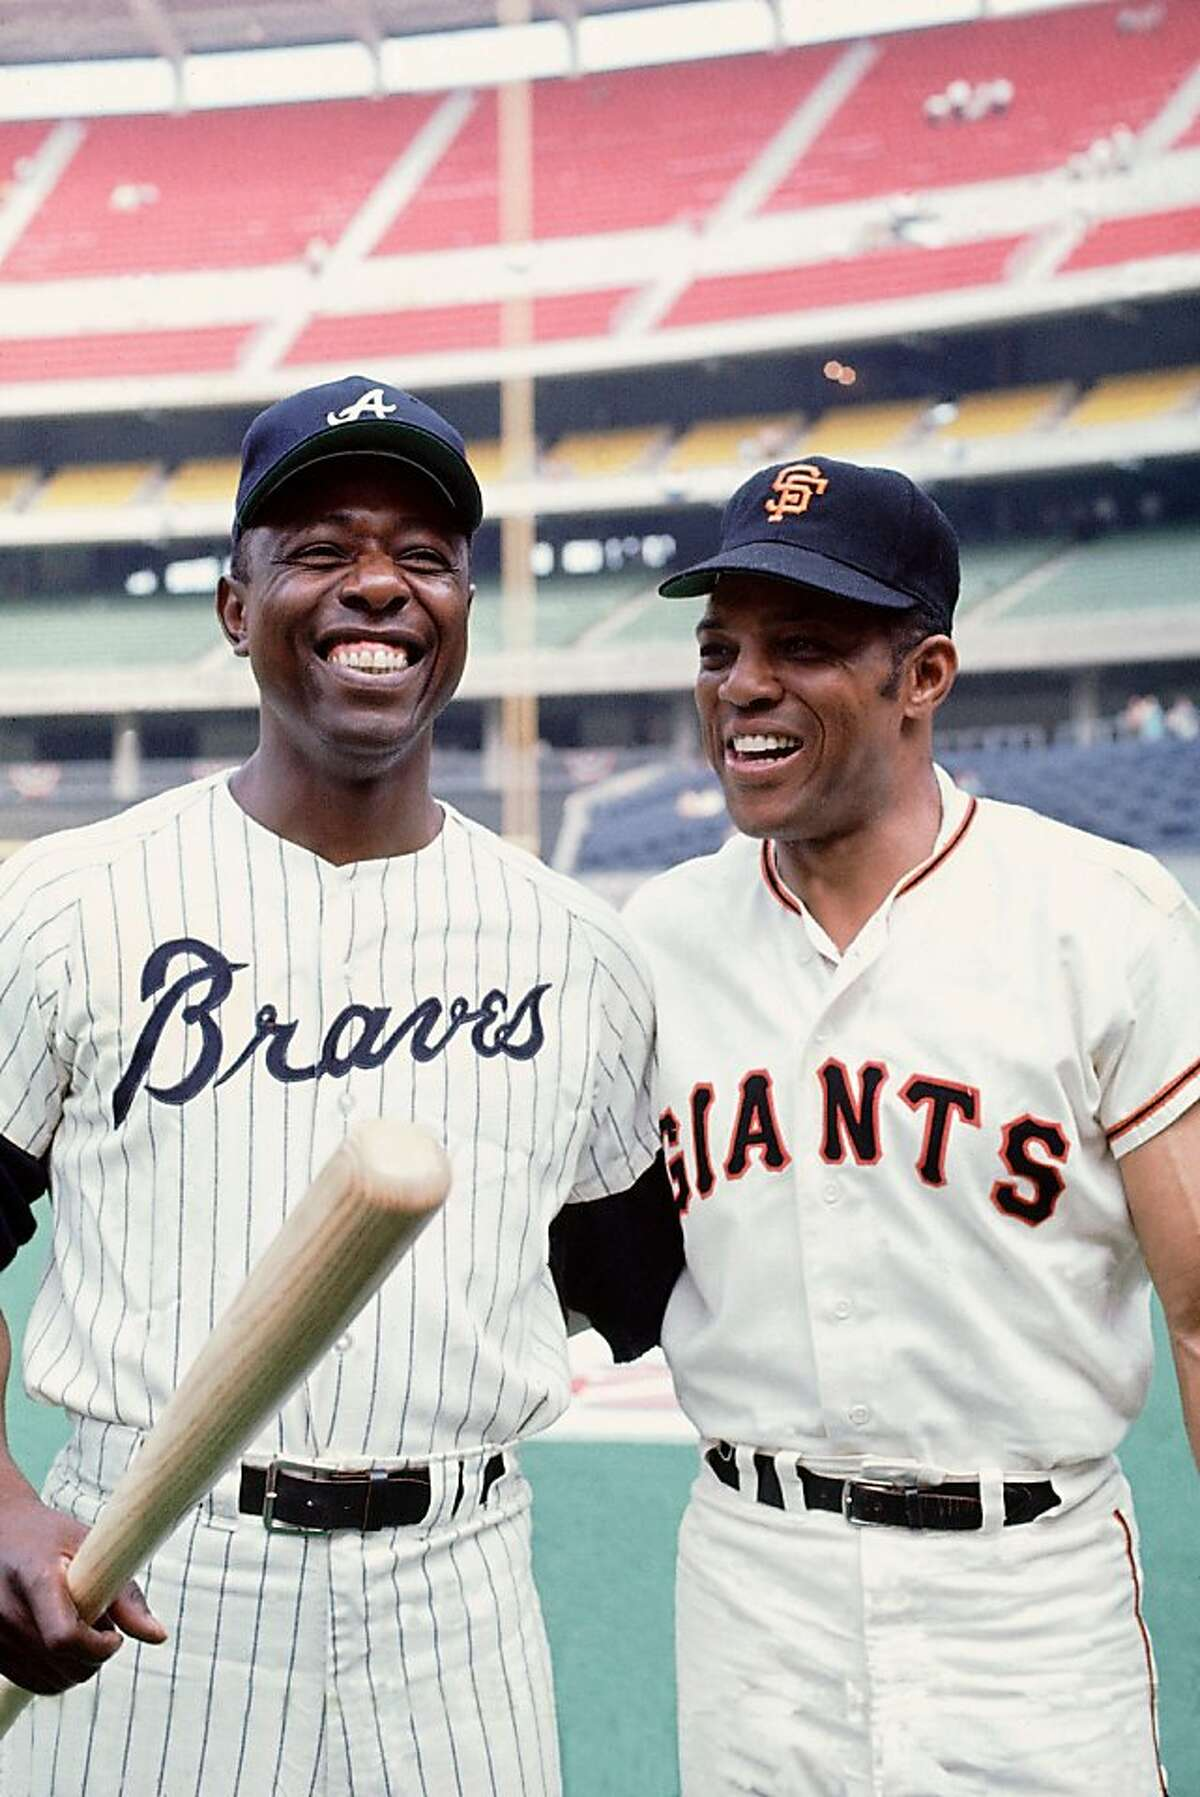 Hank Aaron #44 of the Atlanta Braves poses with Willie Mays #24 of the San Francisco Giants before the 1970 All-Star Game on July 14, 1970 at Riverfront Stadium in Cincinnati, Ohio.